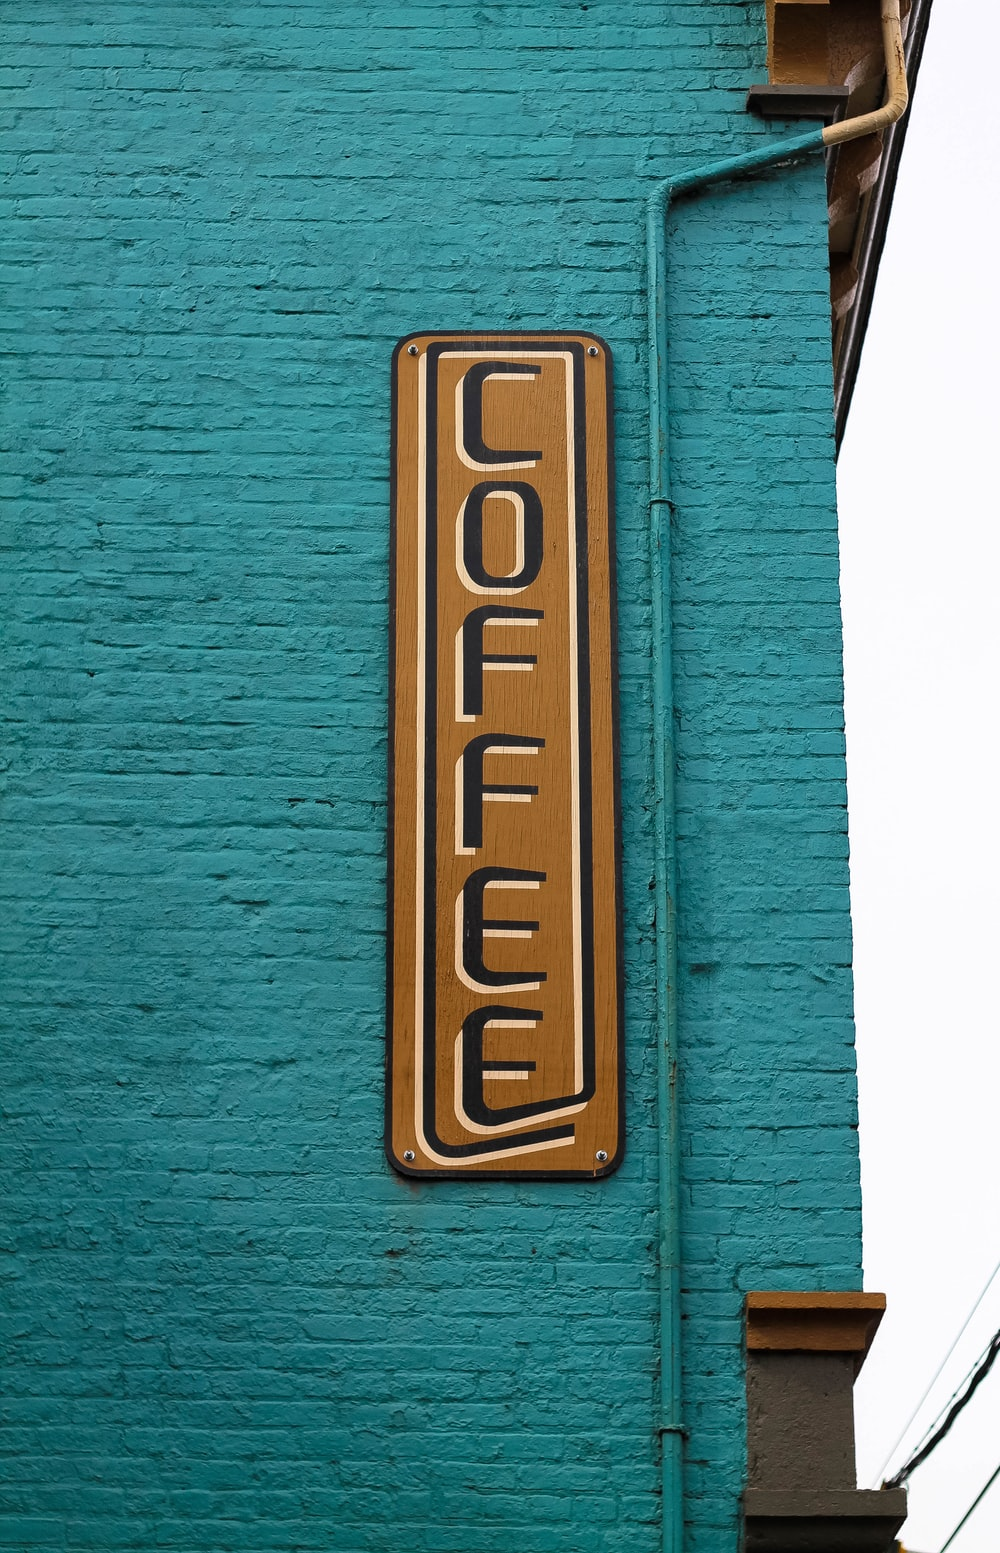 brown and black wooden coffee sign board on blue brick wall at daytime